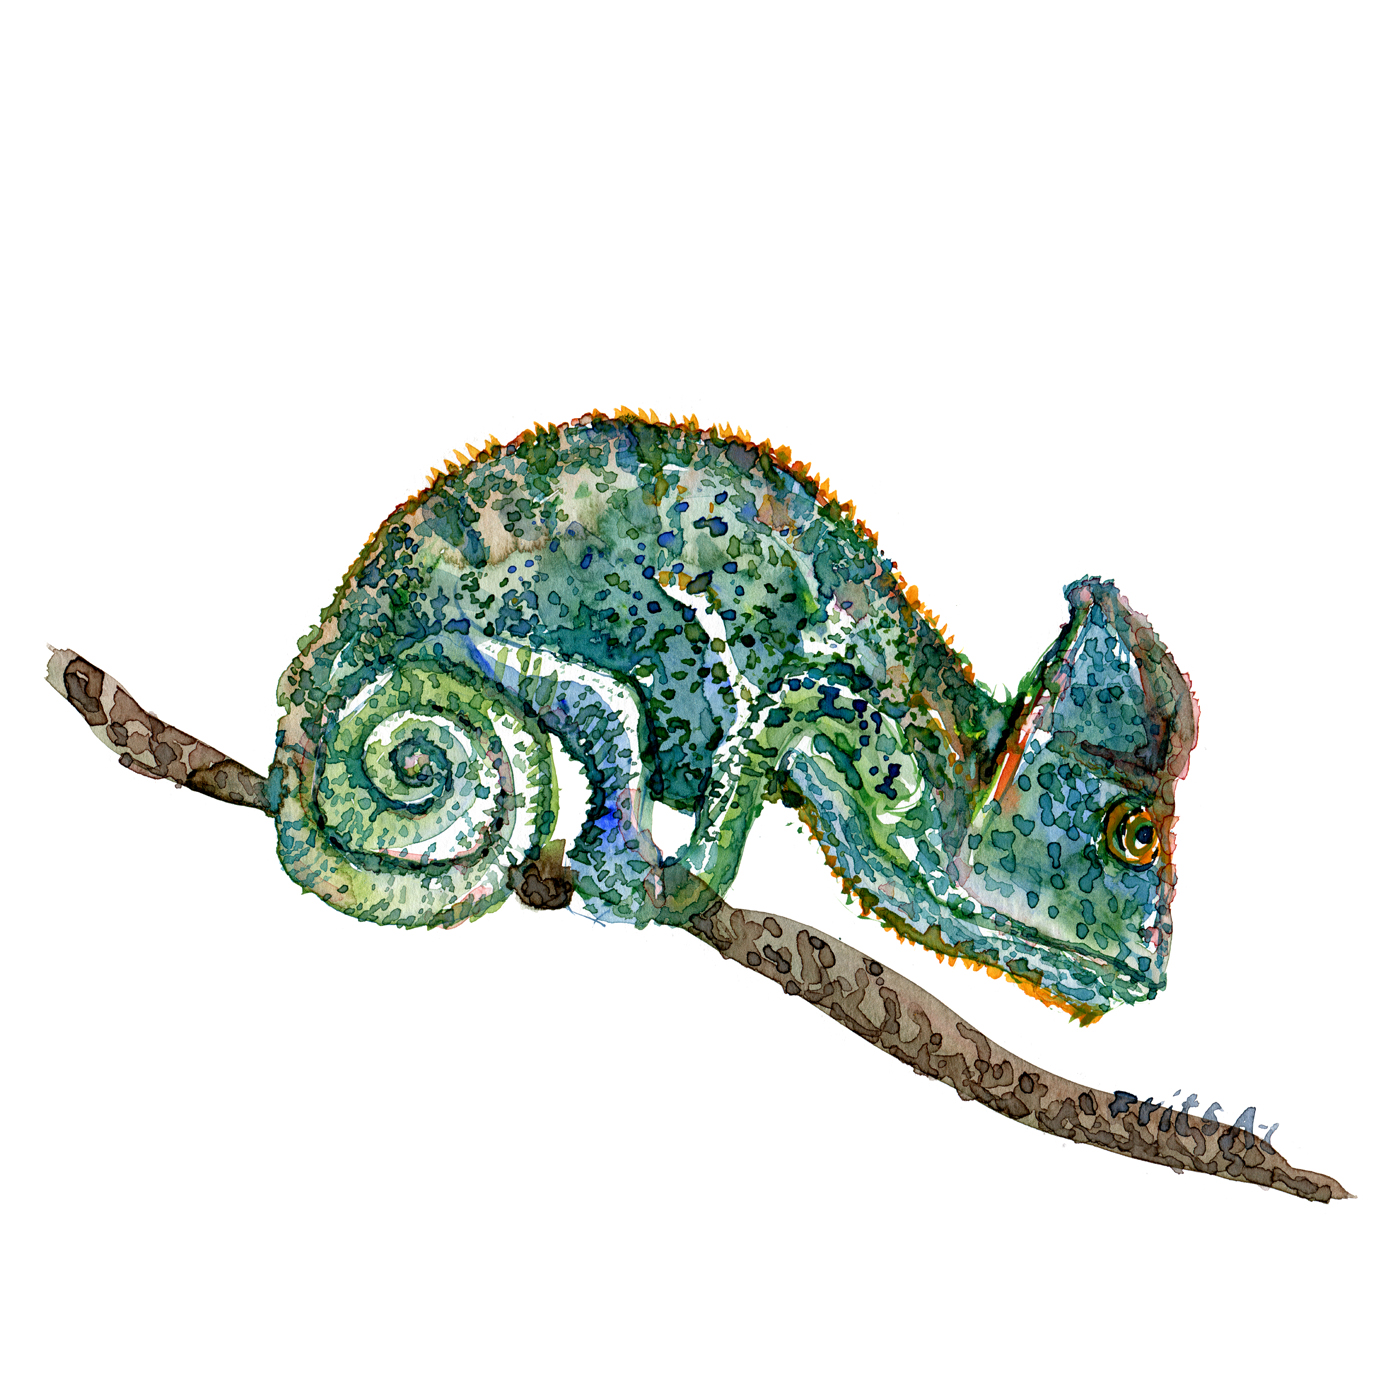 Watercolour sketch of Chameleon sitting on branch, by Frits Ahlefeldt